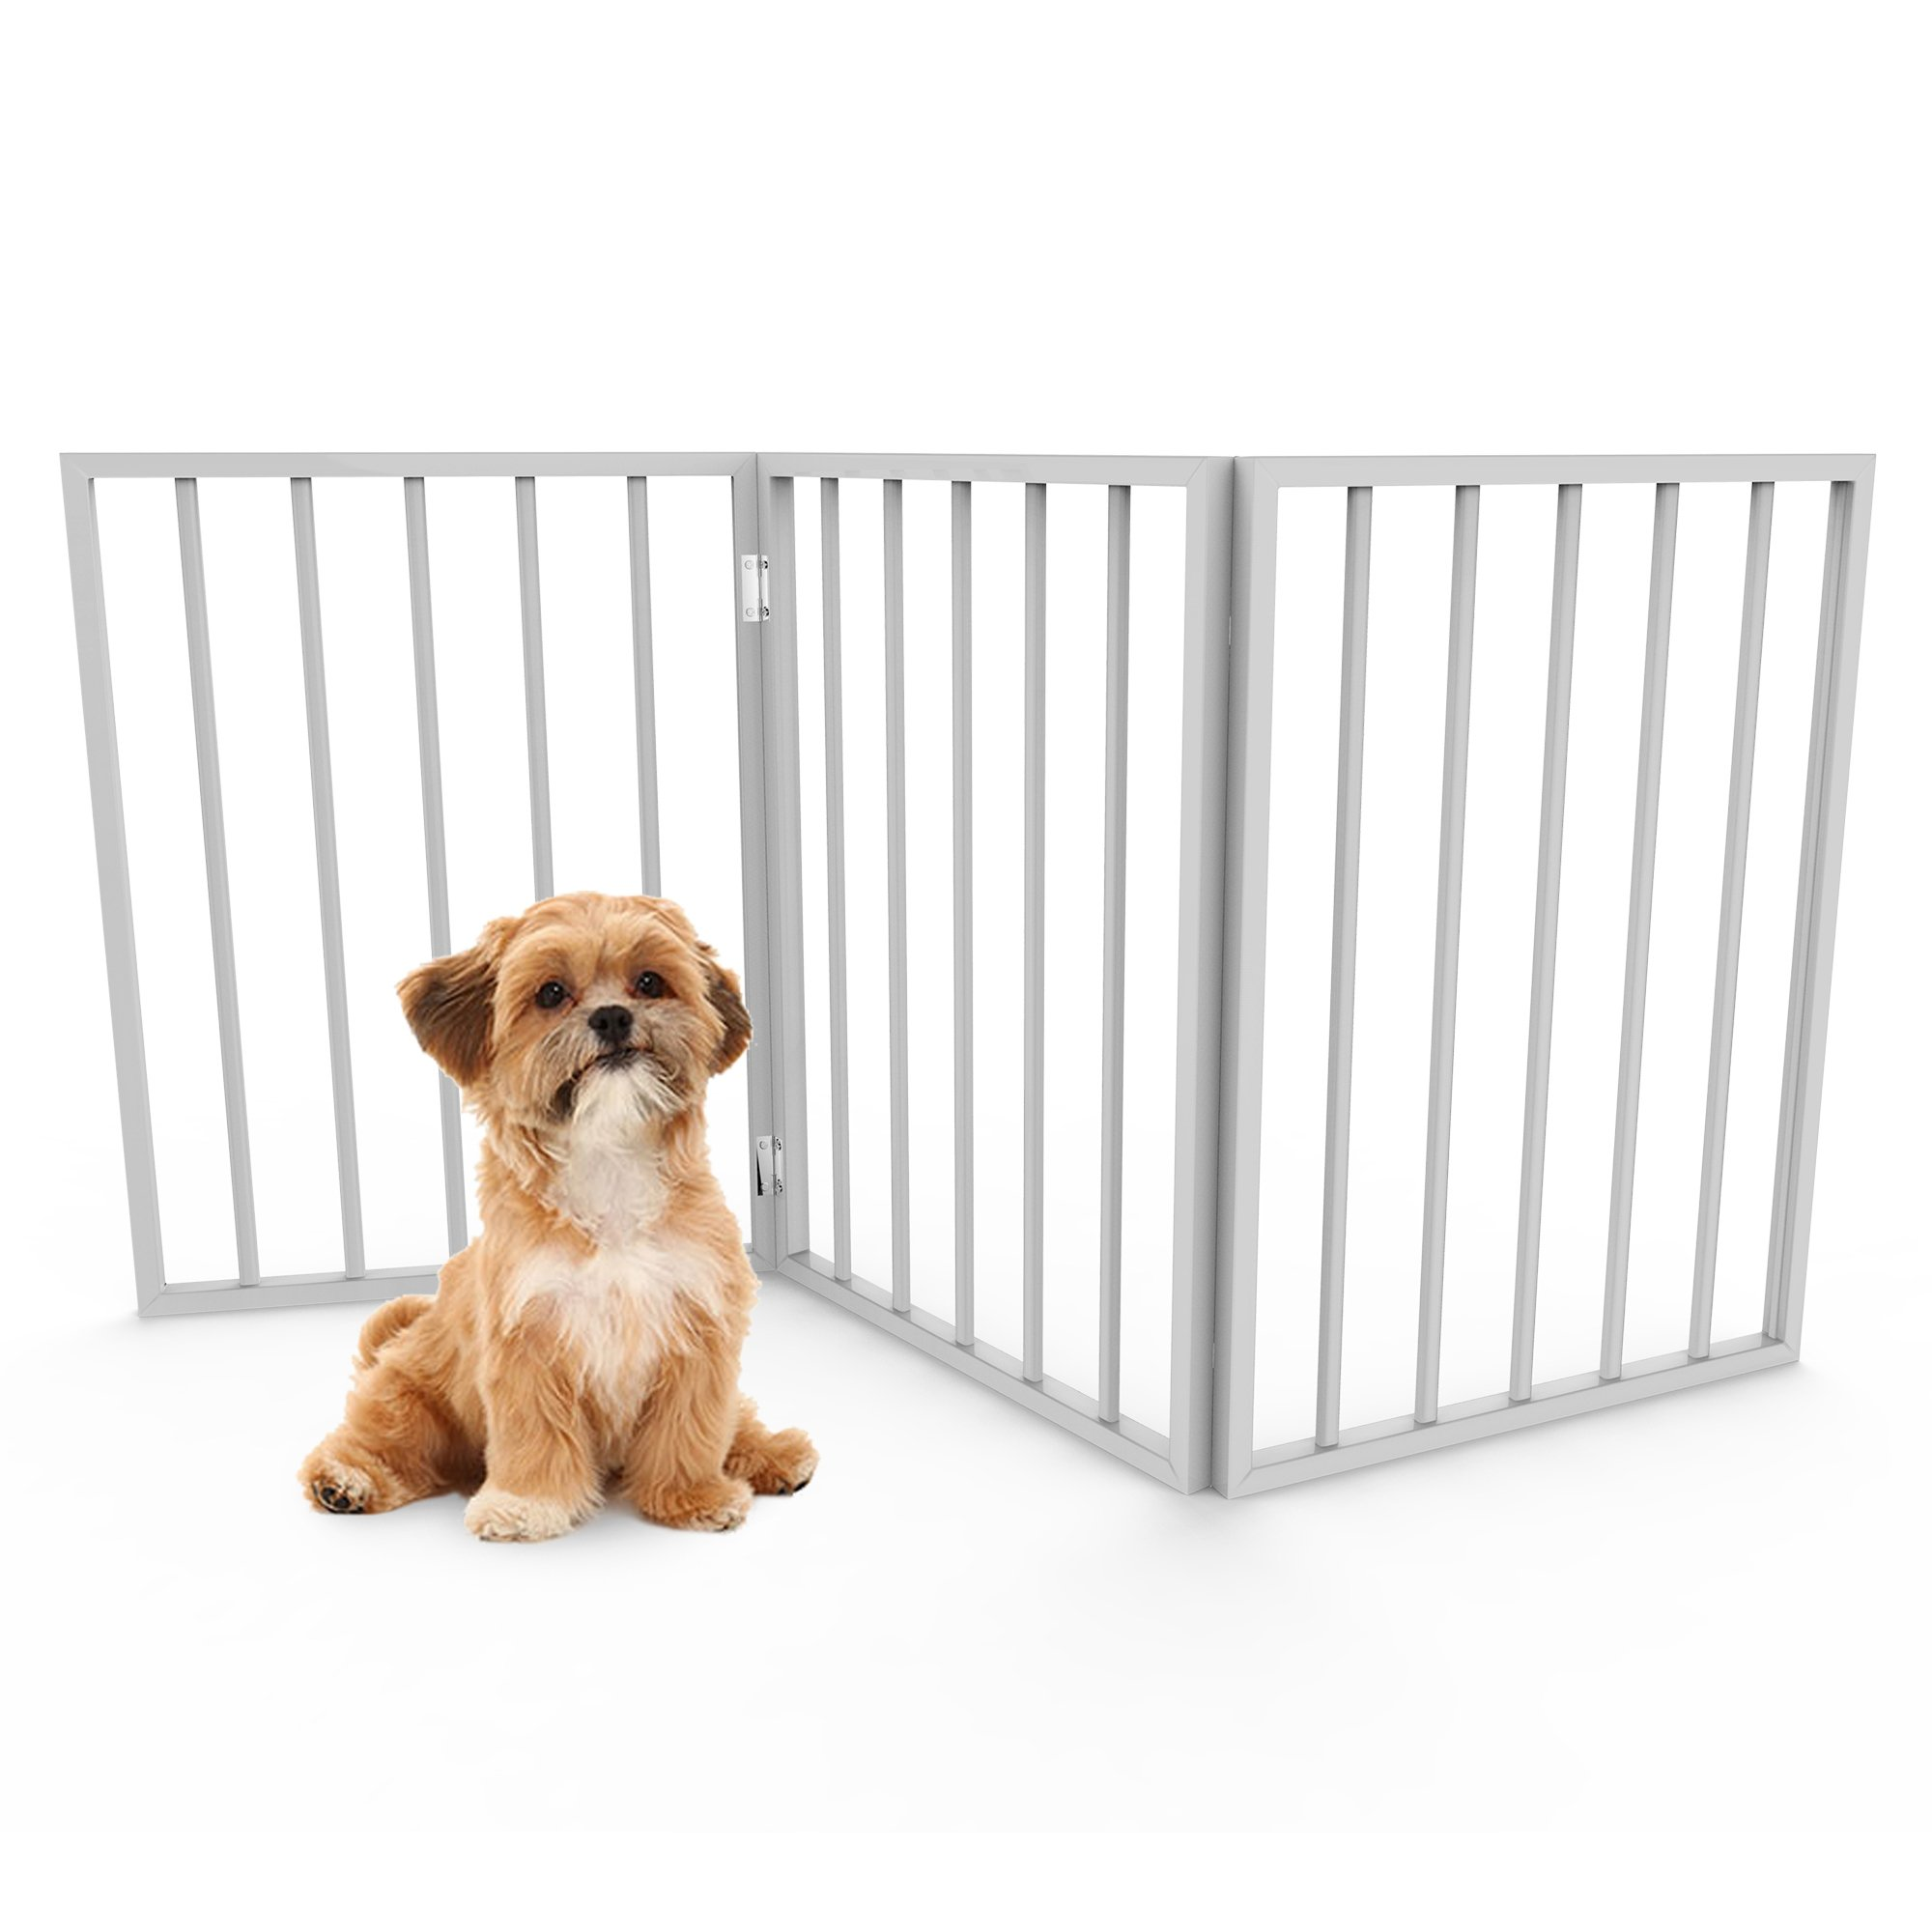 Foldable, Free-Standing Wooden Pet Gate- Light Weight, Indoor Barrier for Small Dogs / Cats by PETMAKER- White, 24 Inch Step Over Doorway Fence by PETMAKER